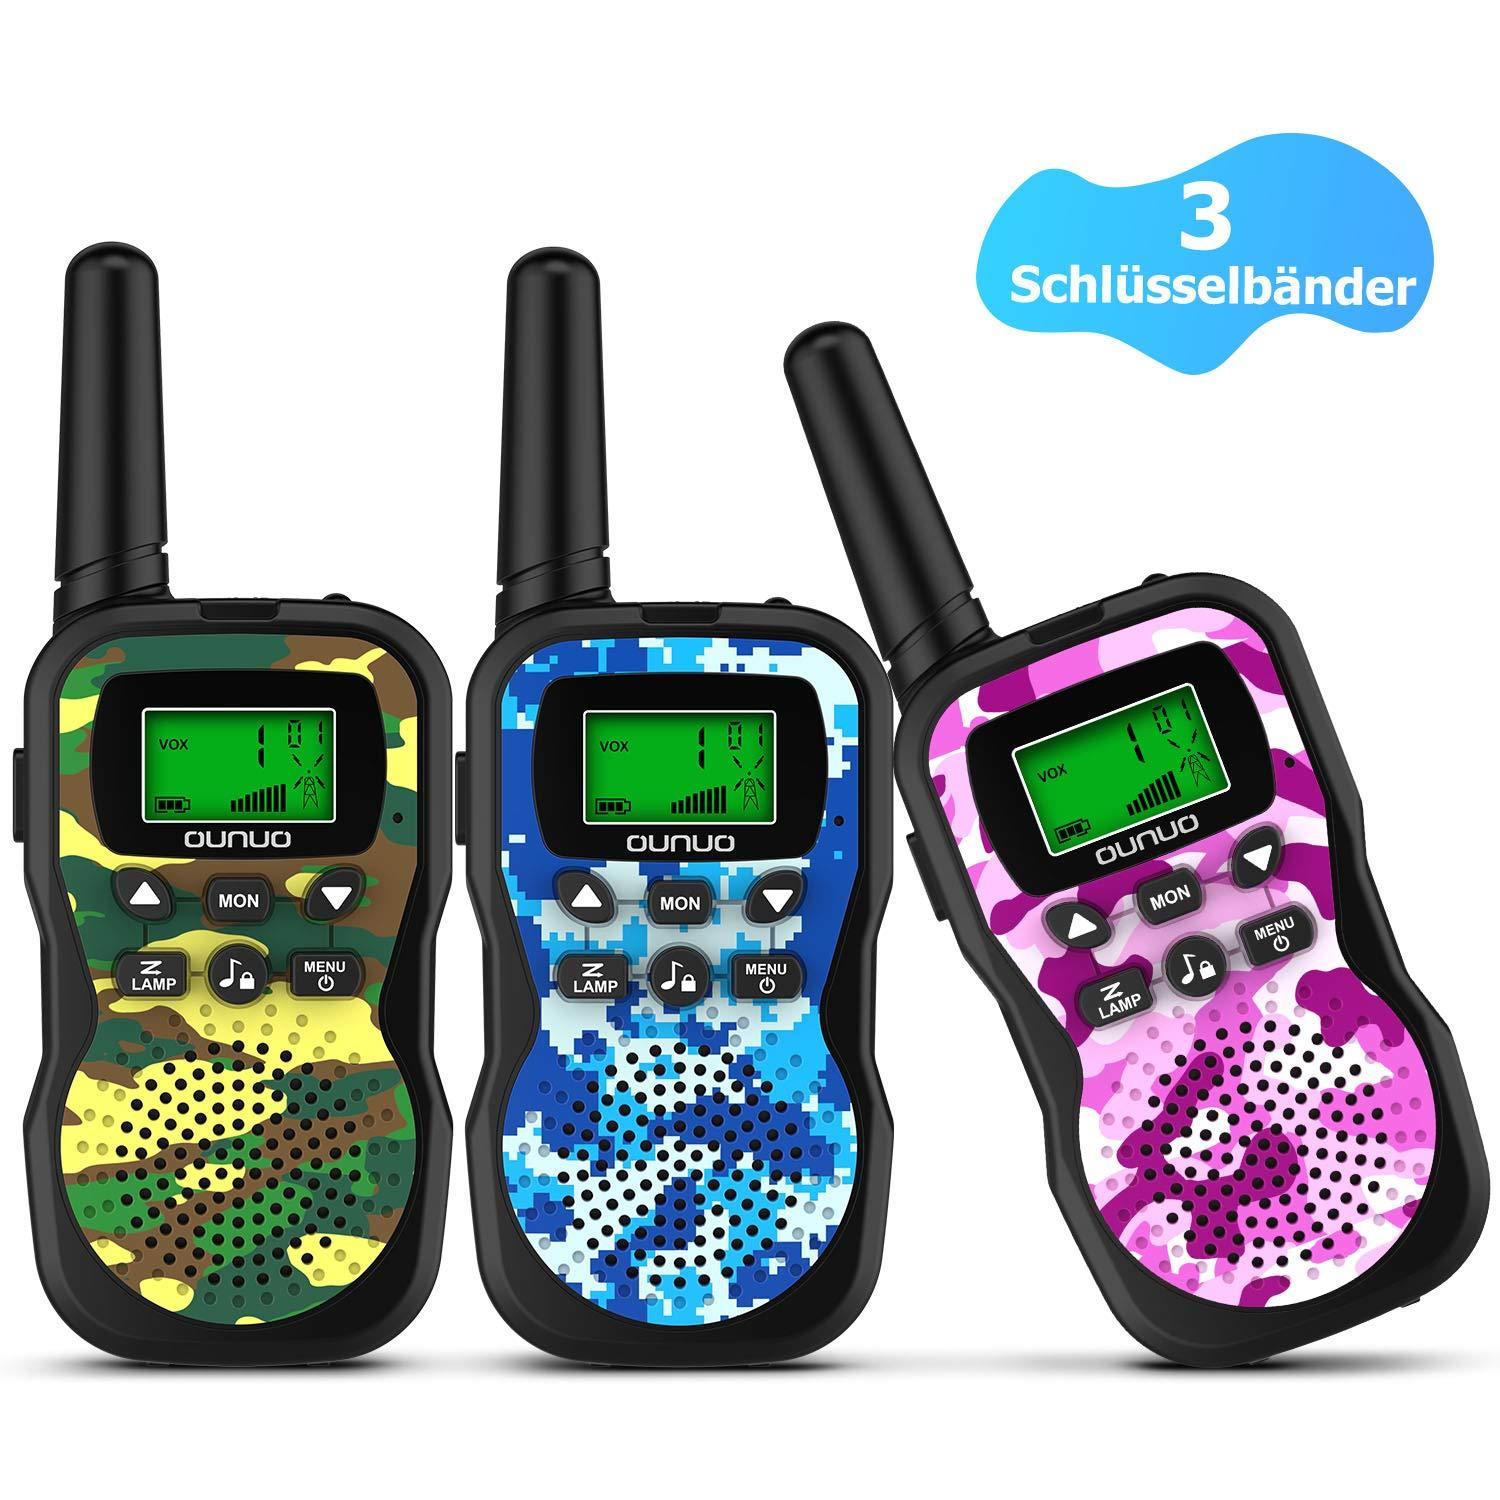 walkie talkie kind die besten walkie talkies f r kinder 2020. Black Bedroom Furniture Sets. Home Design Ideas